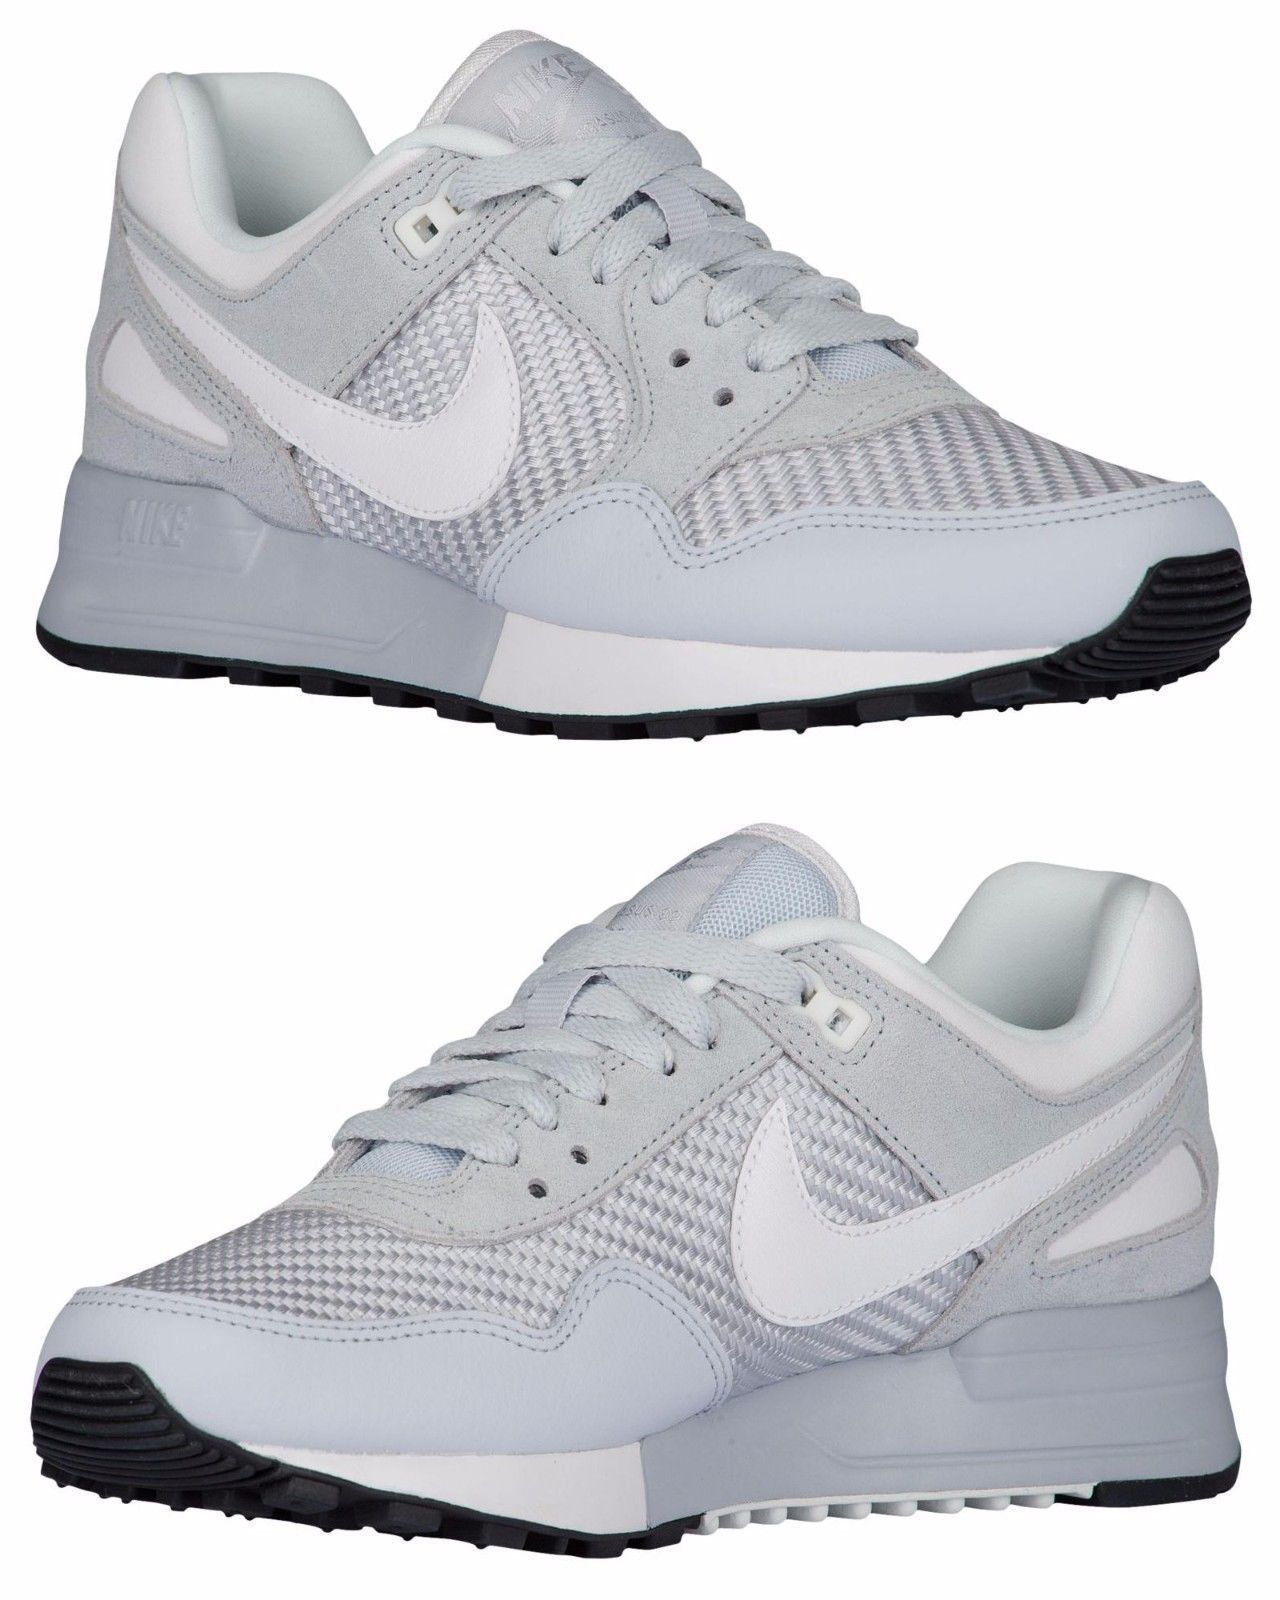 sneakers for cheap 25f49 e65e9 Nike Air Pegasus 89 Women S Casual Pure Platinum - Wolf Grey - Summit White  Usa